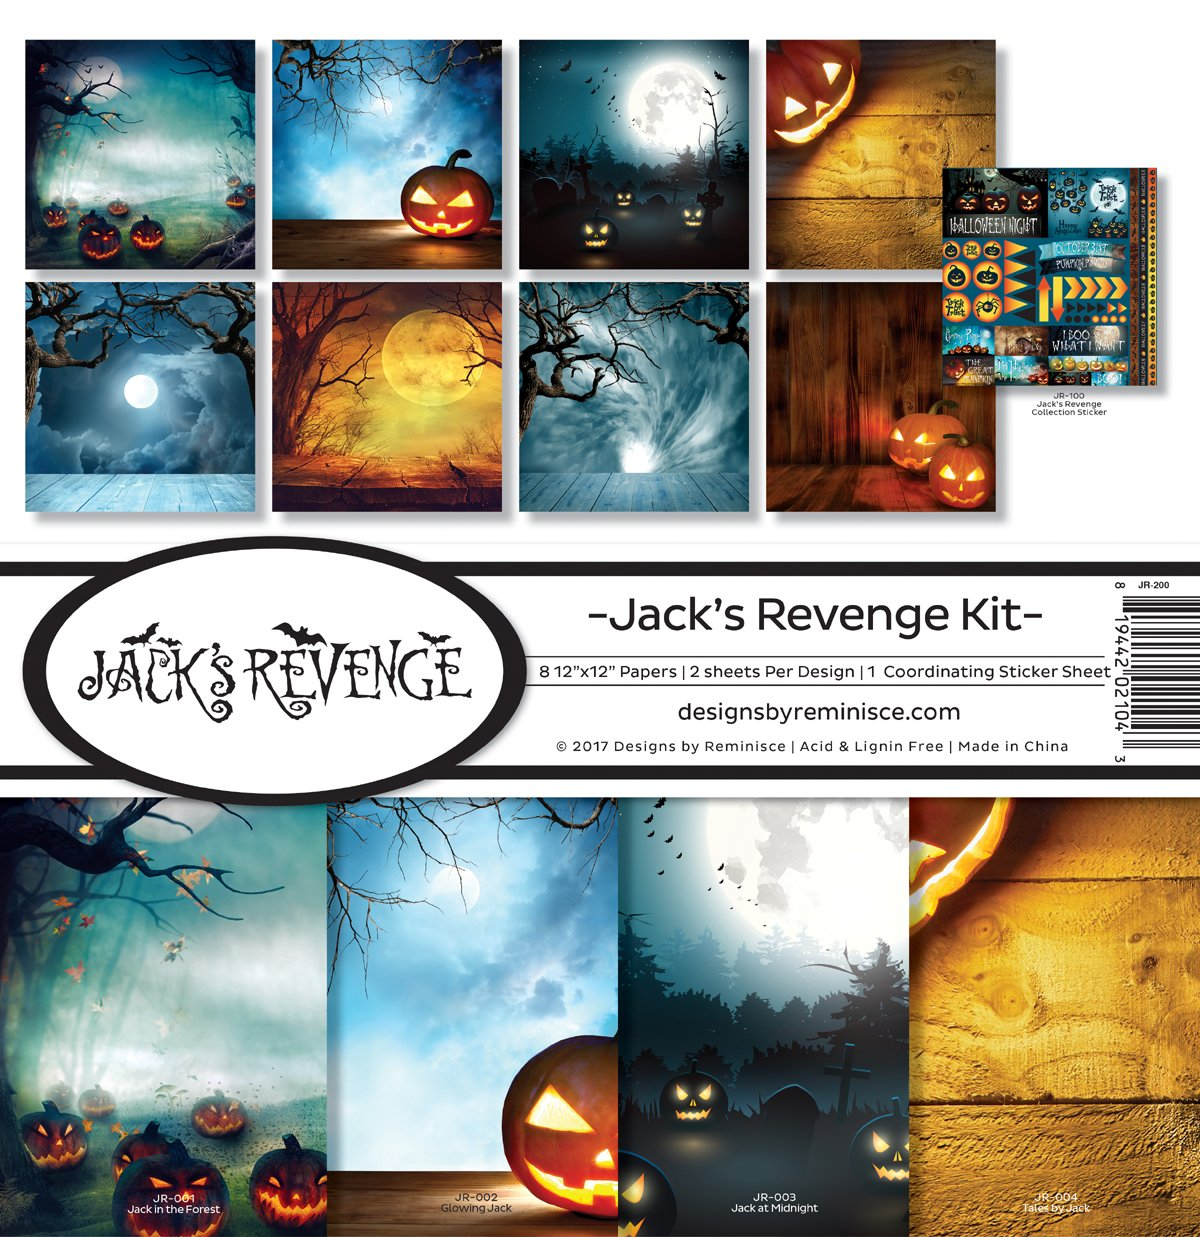 Erinnerung Jack 's Revenge Scrapbook Collection Kit Reminisce JR-200